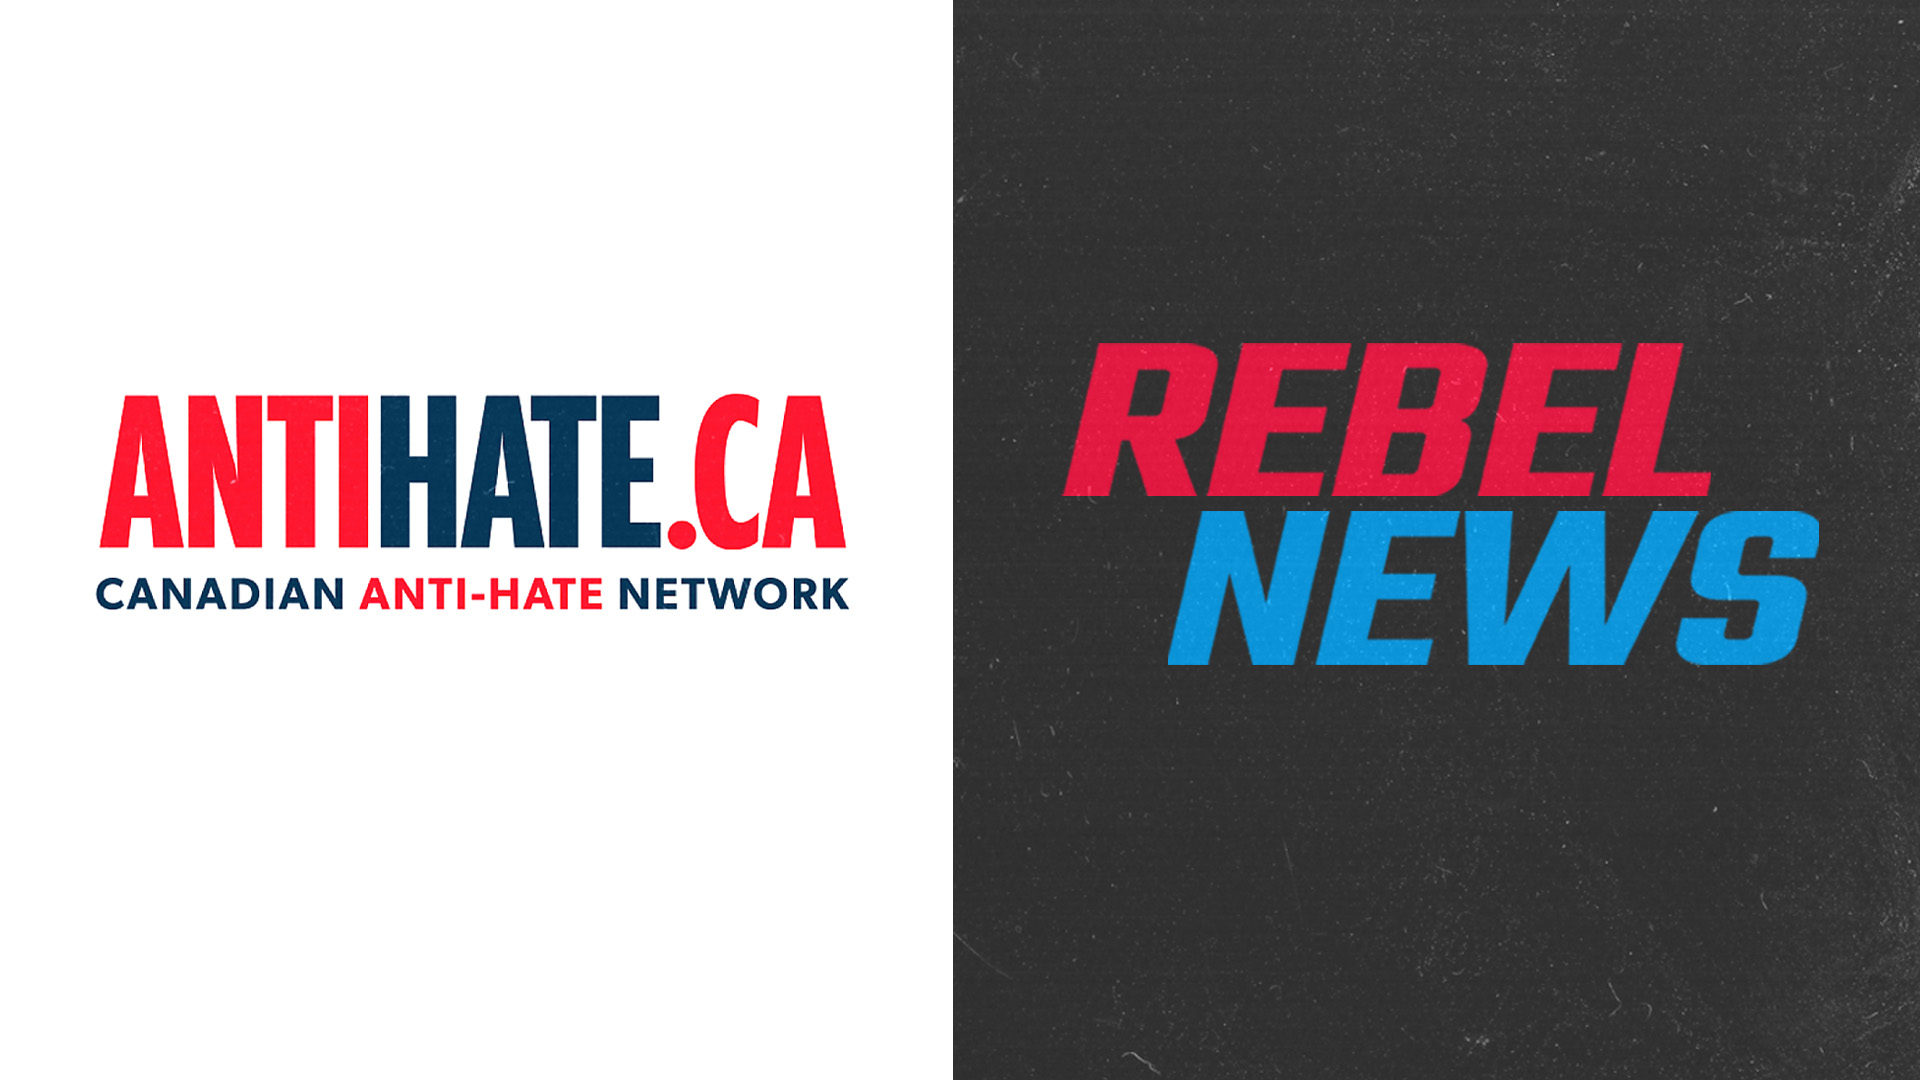 Canadian Anti-Hate Network forced to apologize for saying that Rebel News incited Christchurch terrorist